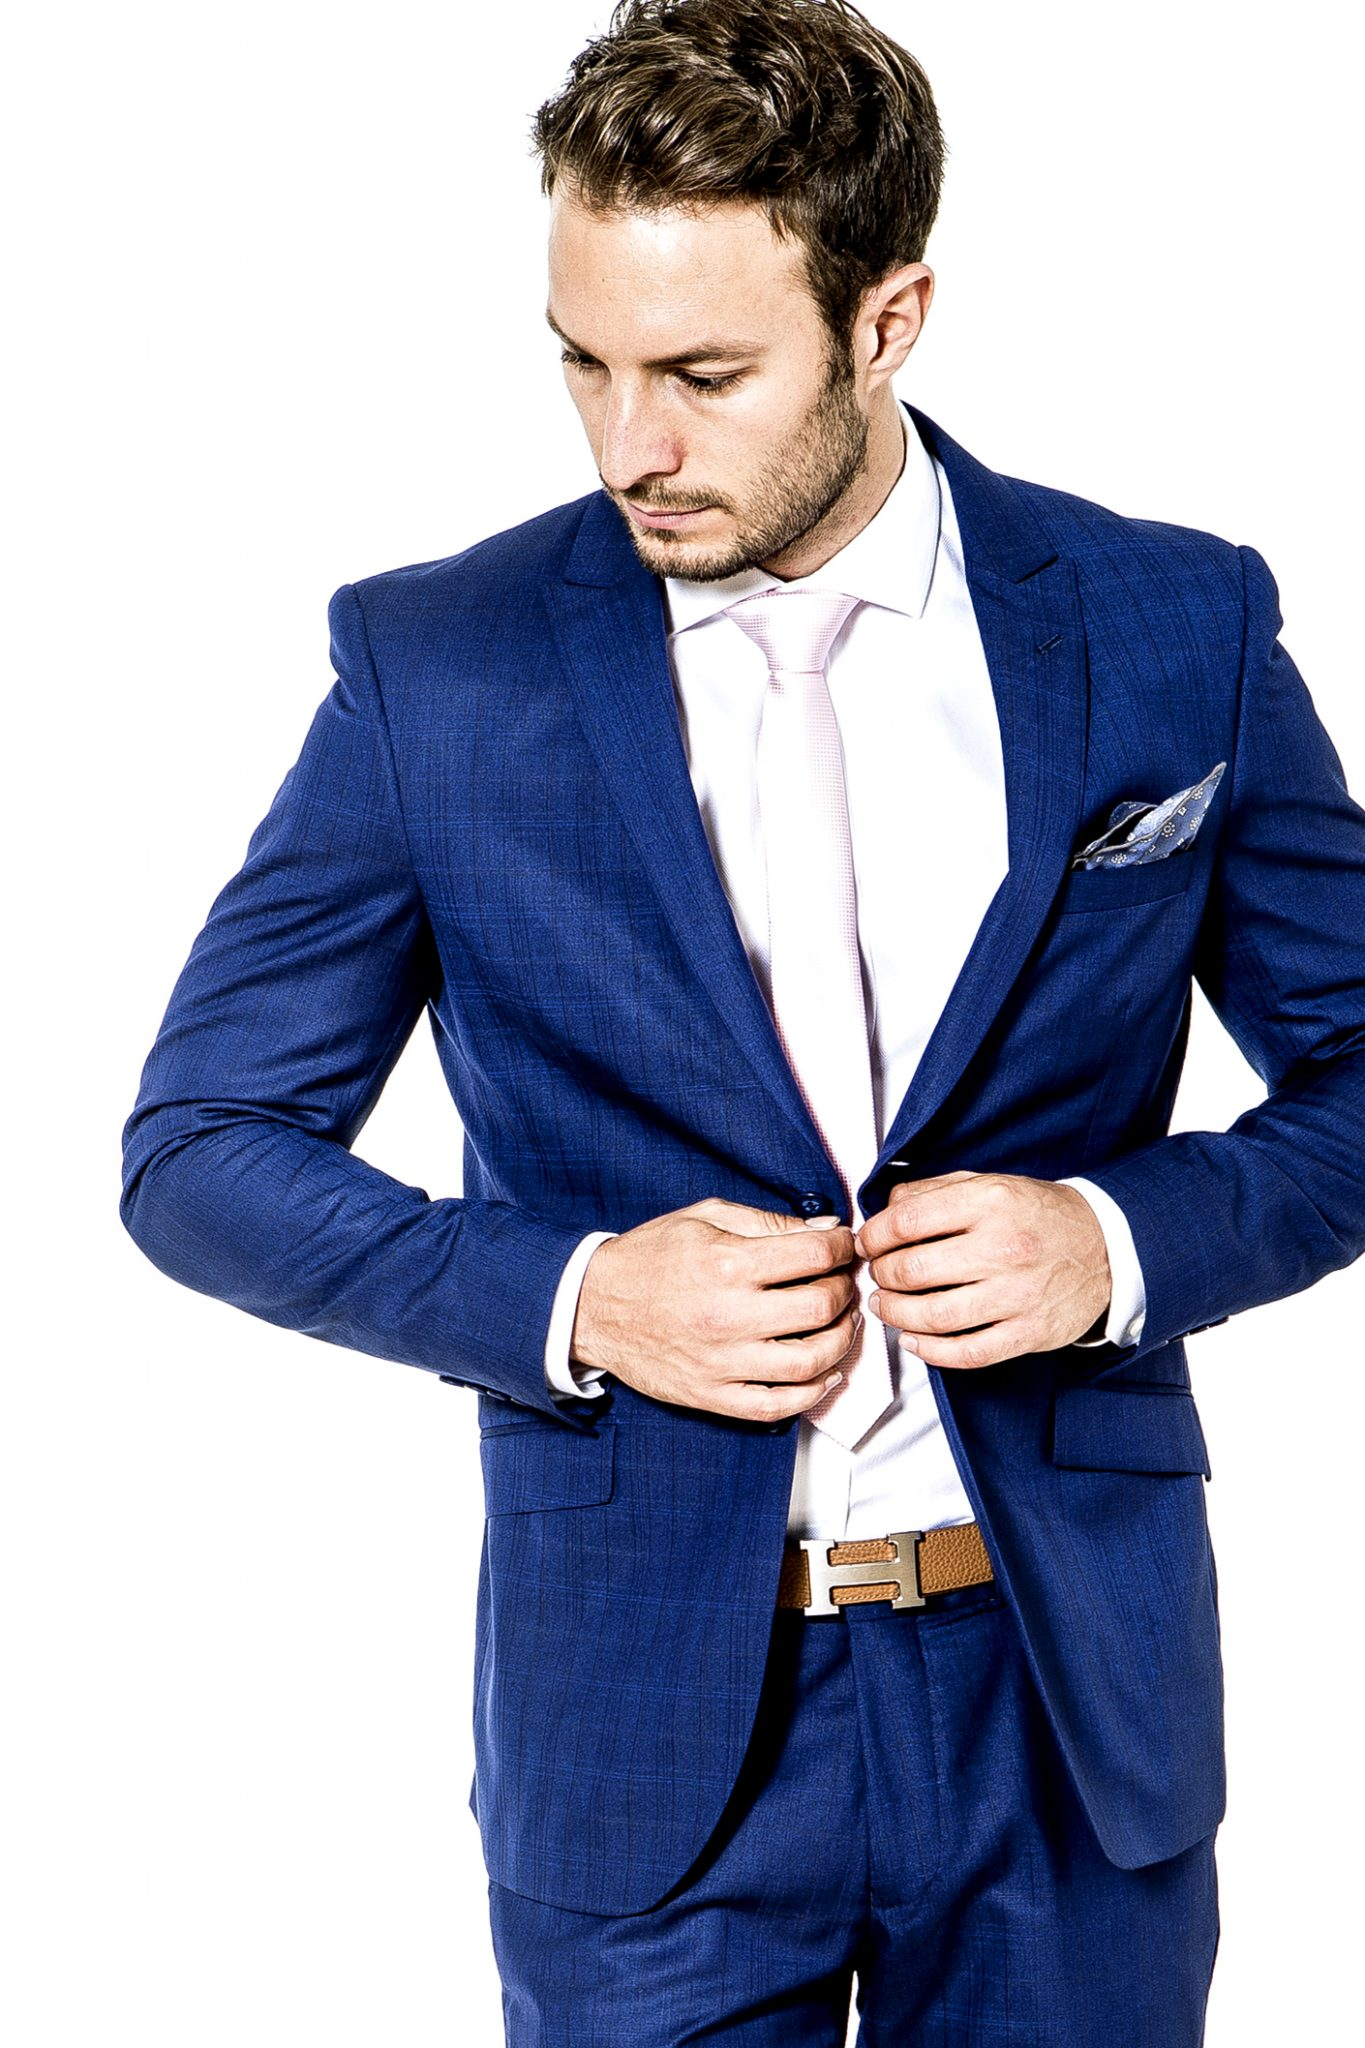 mens-fashion-photographer-for-suits